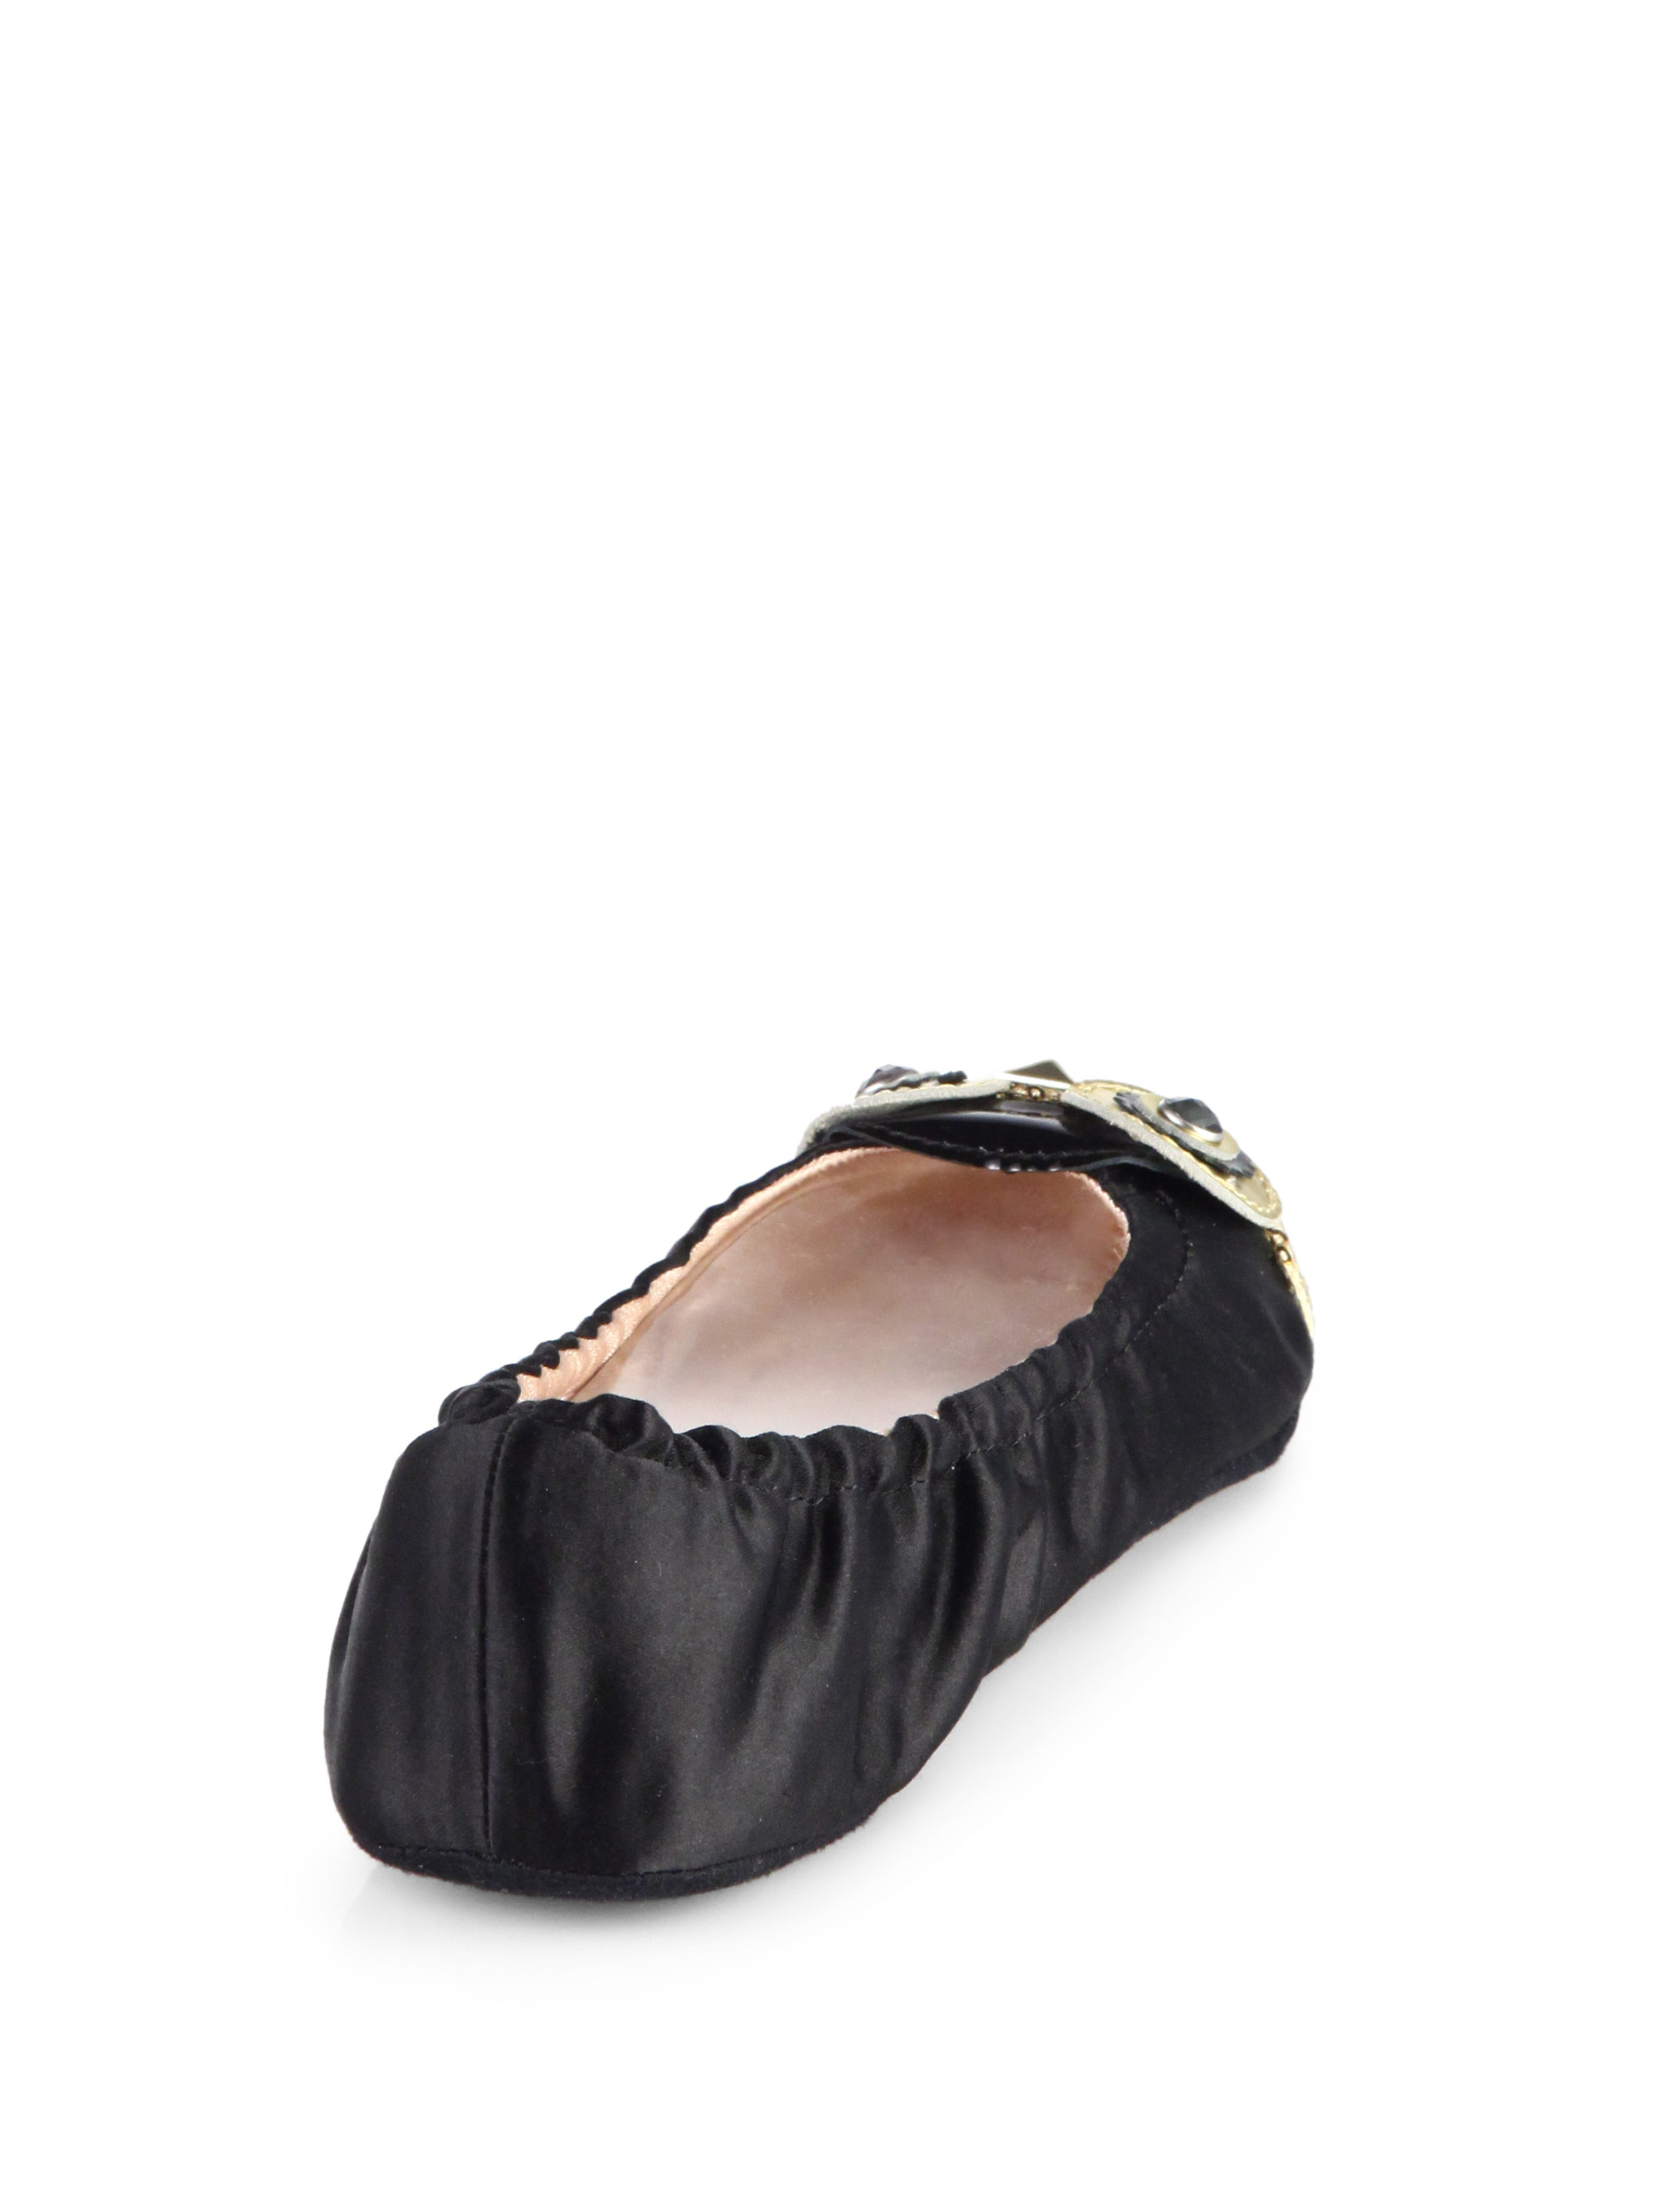 79d0d1d3f387 Lyst - Kate Spade Cuckoo Owl Sequinsatin Slippers in Black